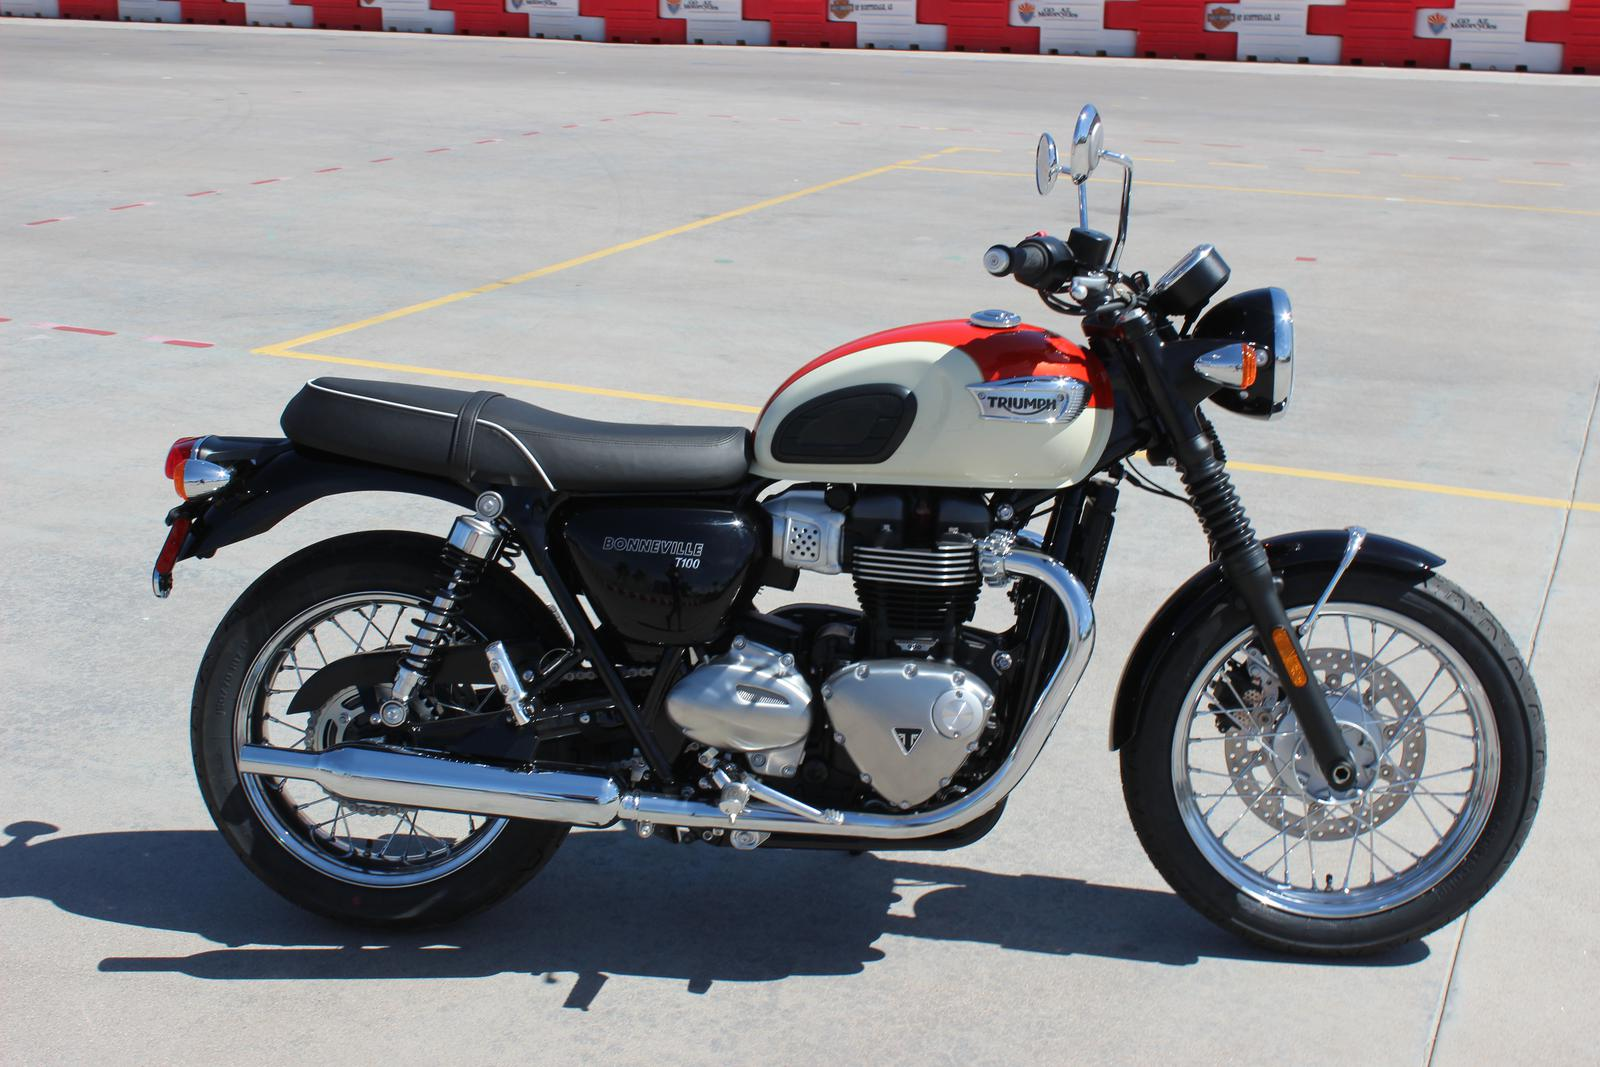 2018 Triumph Bonneville T100 2 Tone For Sale In Scottsdale Az Go